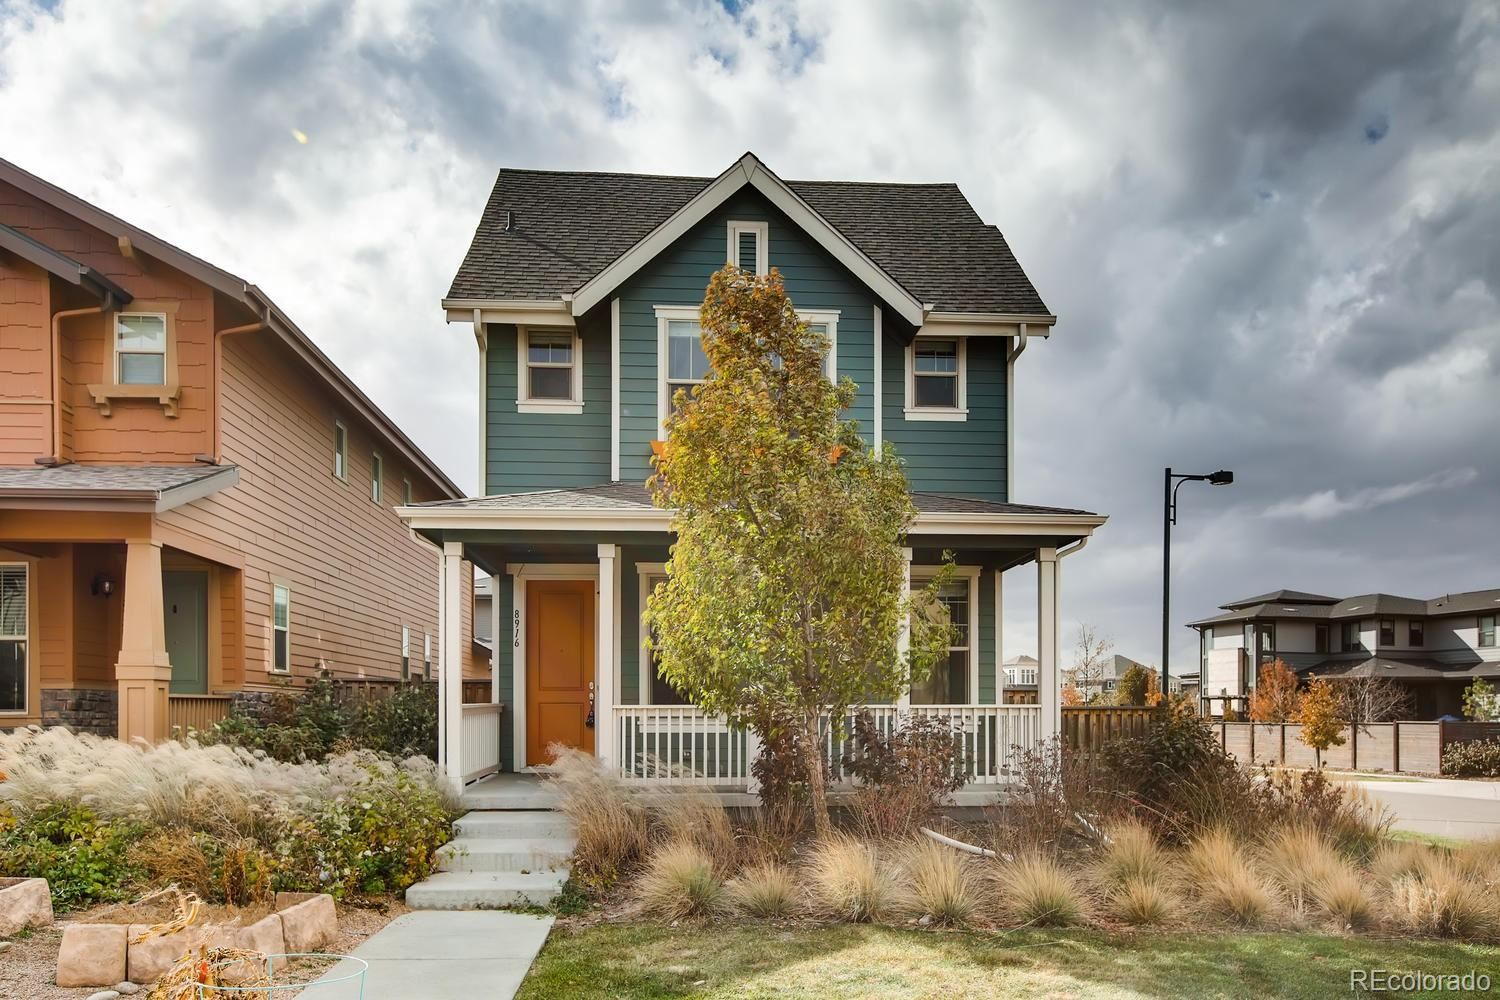 8916 E 50th Avenue, Denver, CO 80238 - #: 3490863